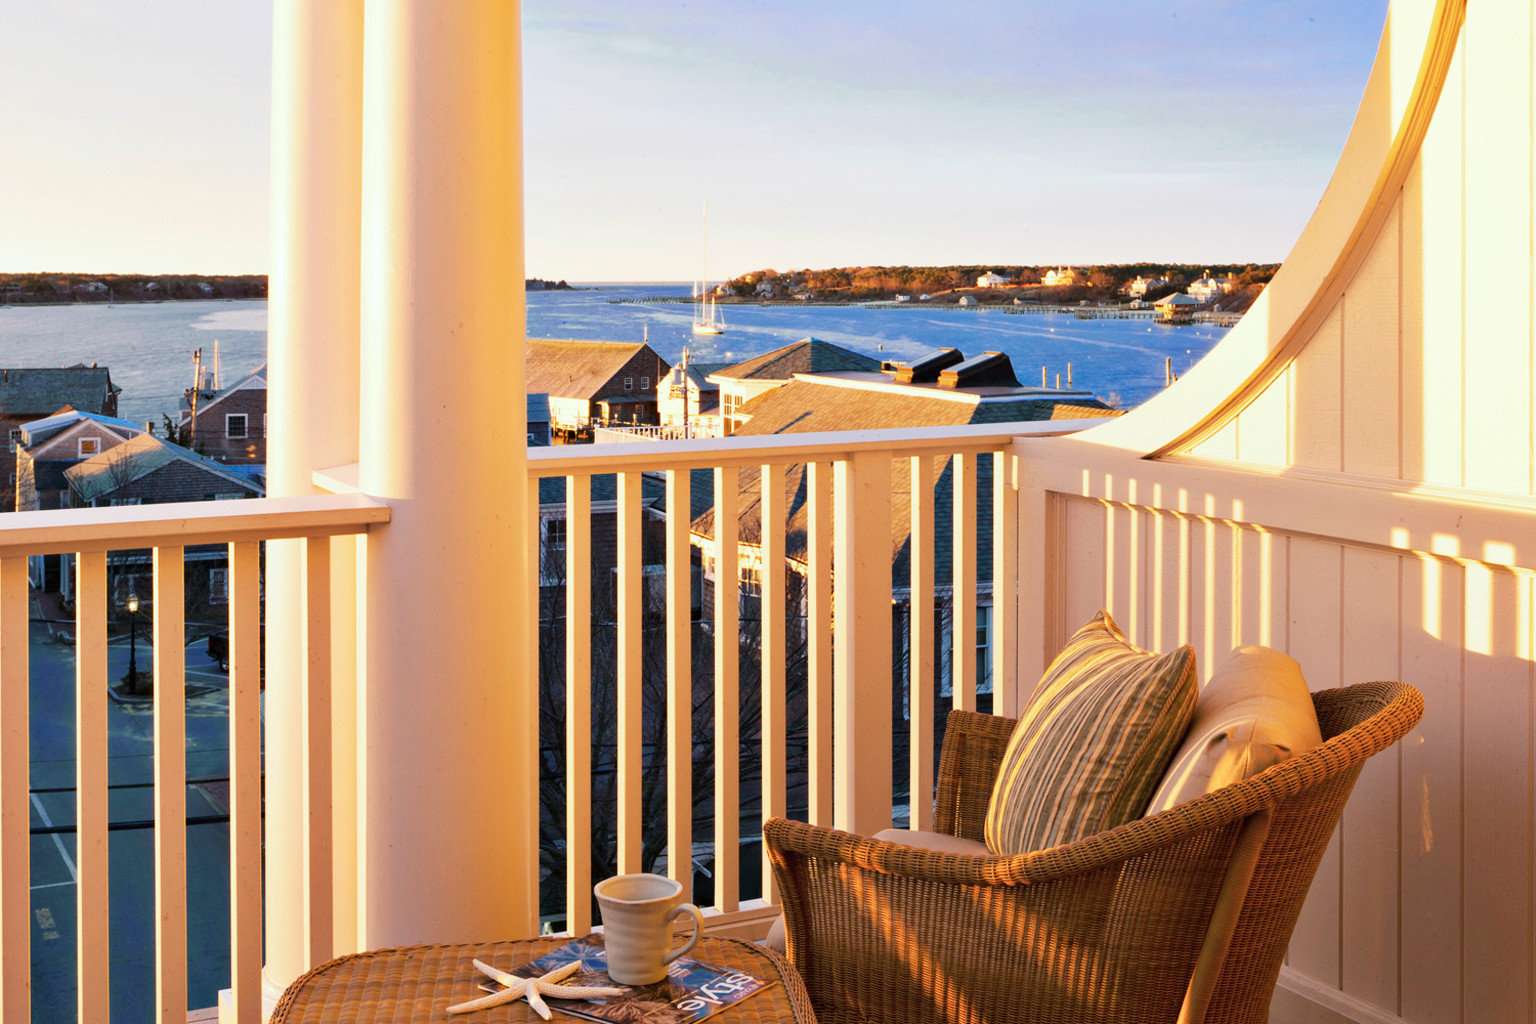 B&B Balcony Boutique Scenic views Trip Ideas Waterfront sky chair property home Resort Ocean house Villa overlooking cottage condominium Suite living room Deck